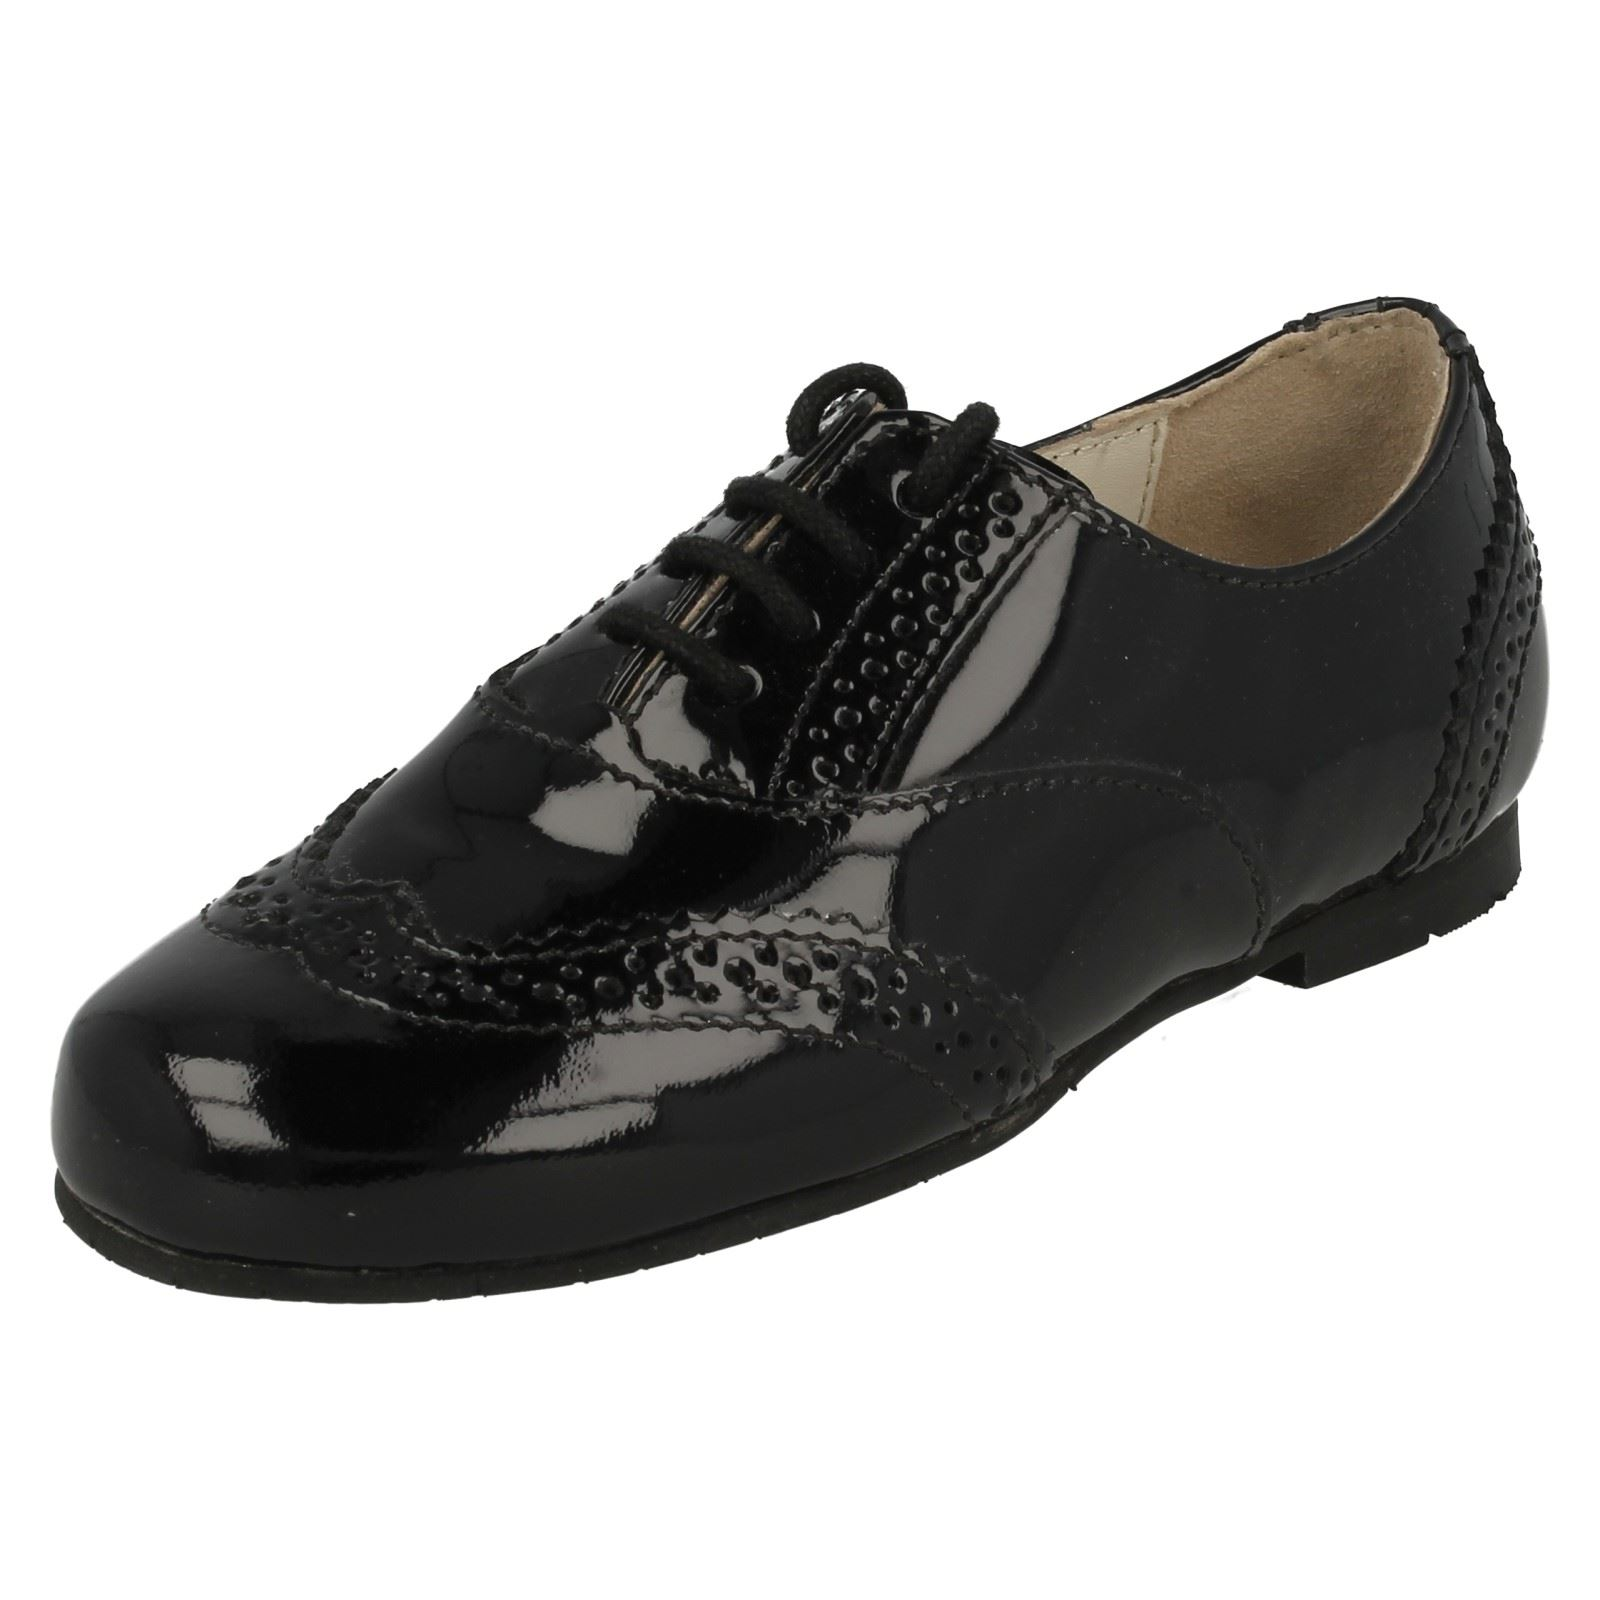 Girls Startrite Formal Lace Up School Shoes Fran